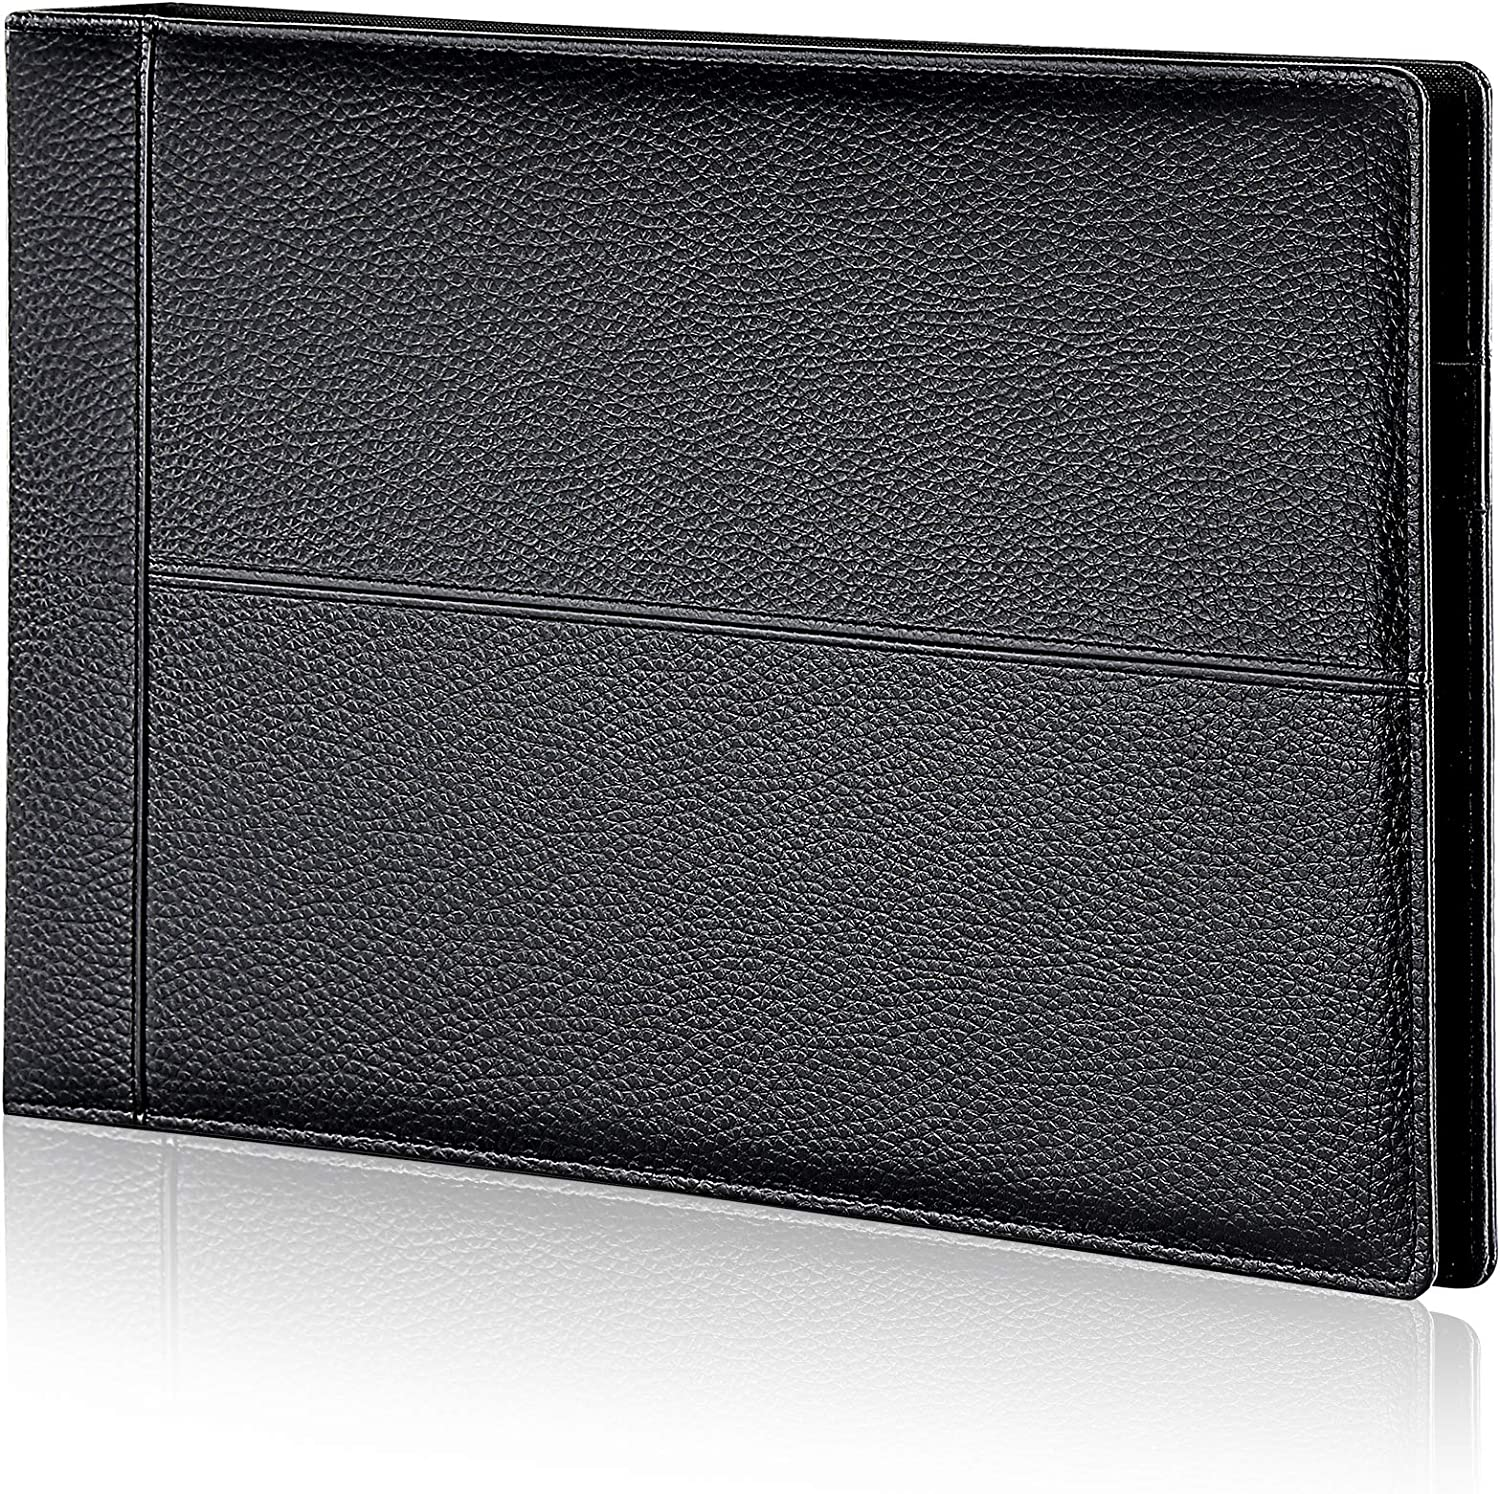 "7 Ring Executive Business Check Binder 600 Checks Capcity for 9"" x 13"" Sheets, PU Leather Checkbook Holder with Zip Pouch"